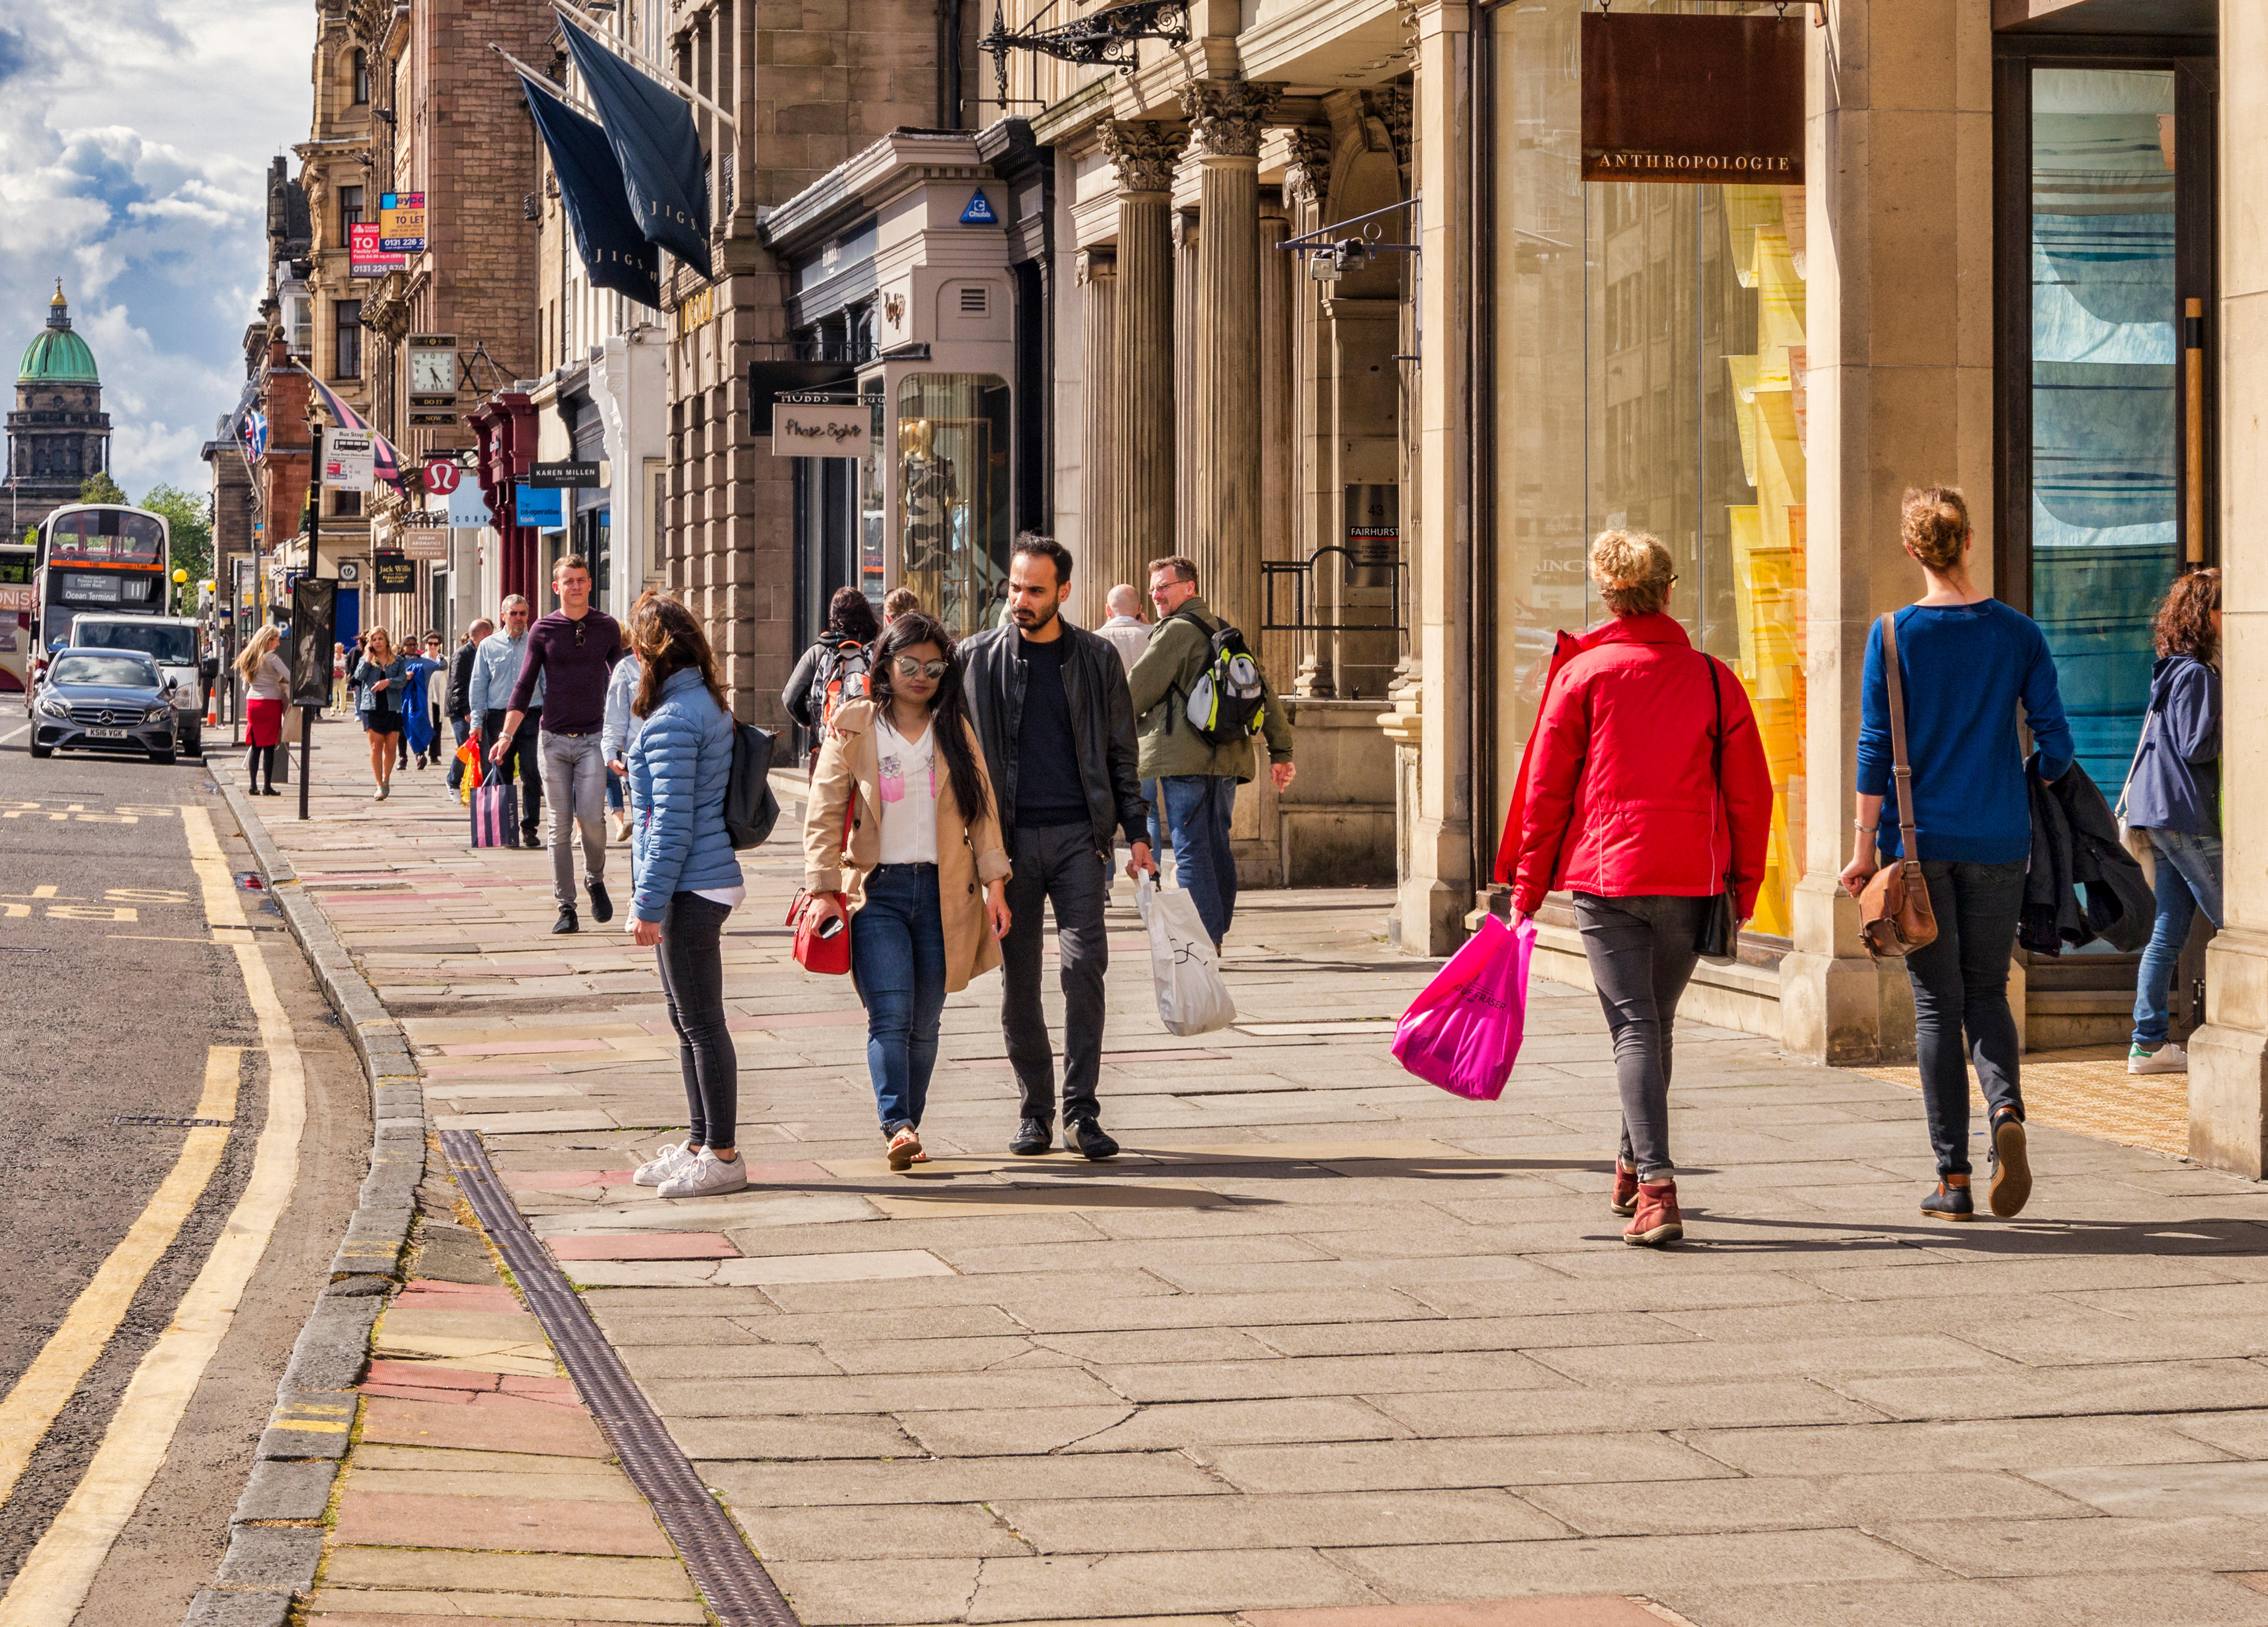 Shoppers can visit more stores when they reopen in April